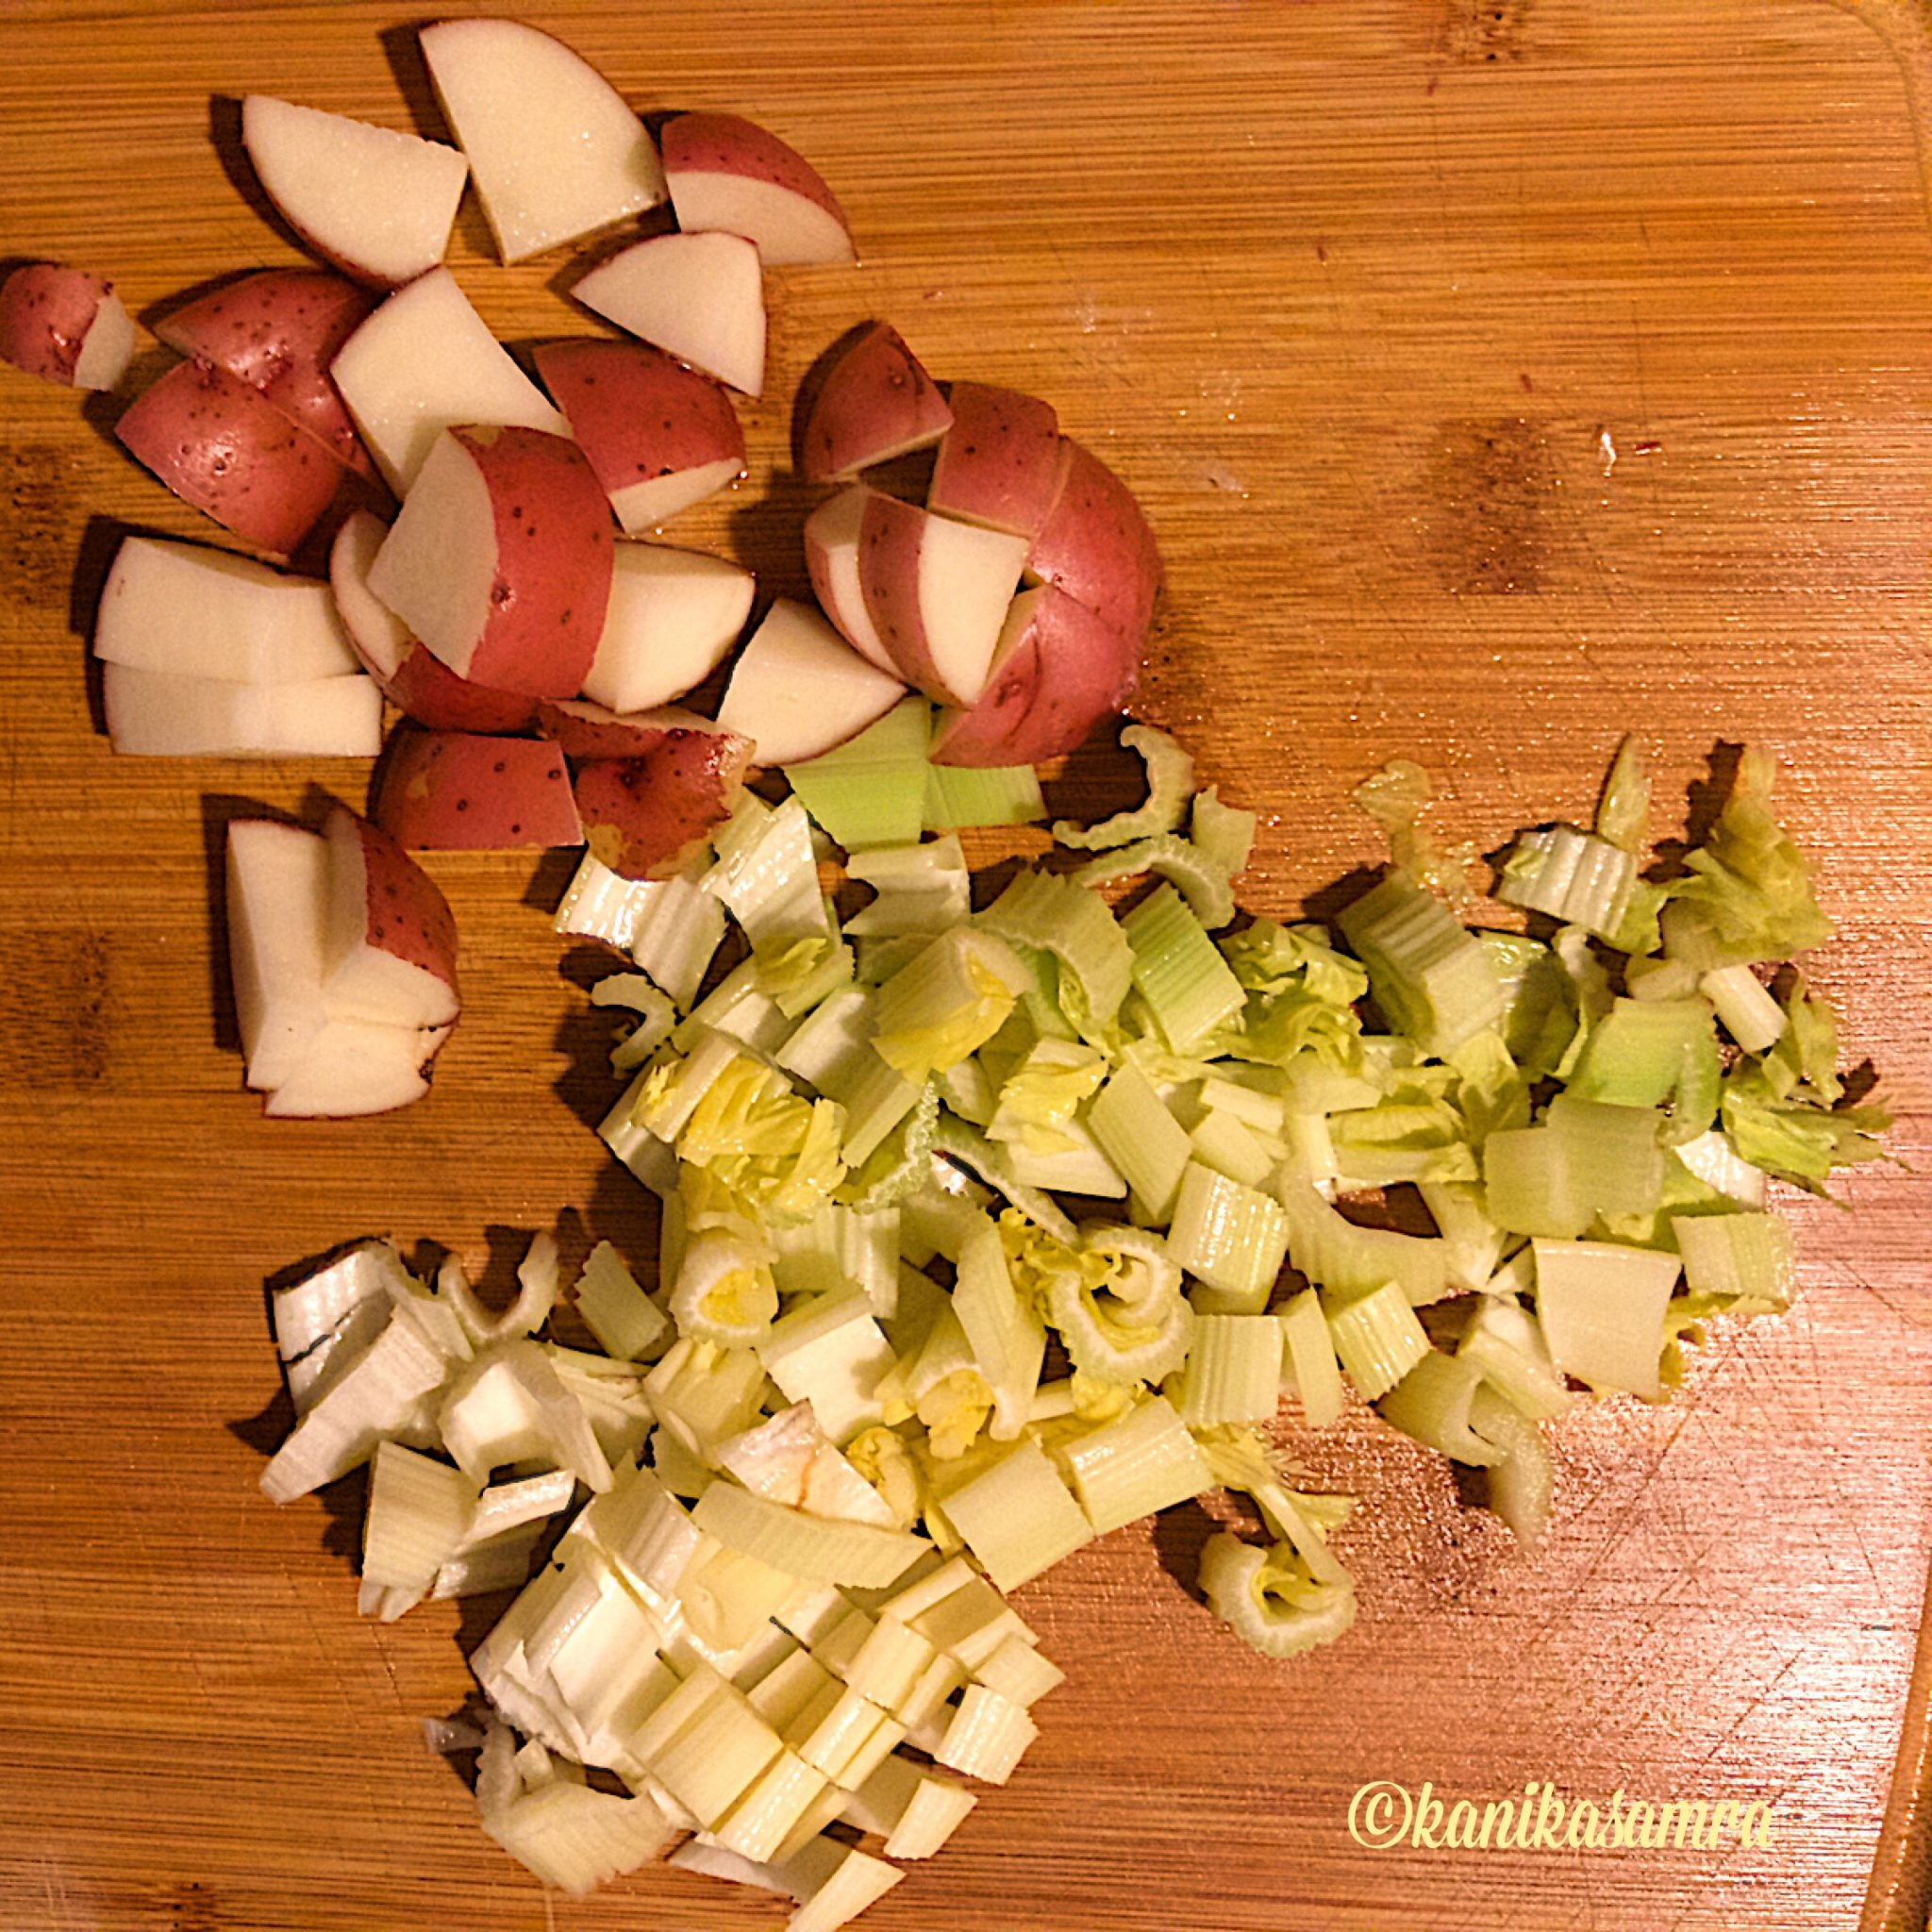 Potatoes and Celery